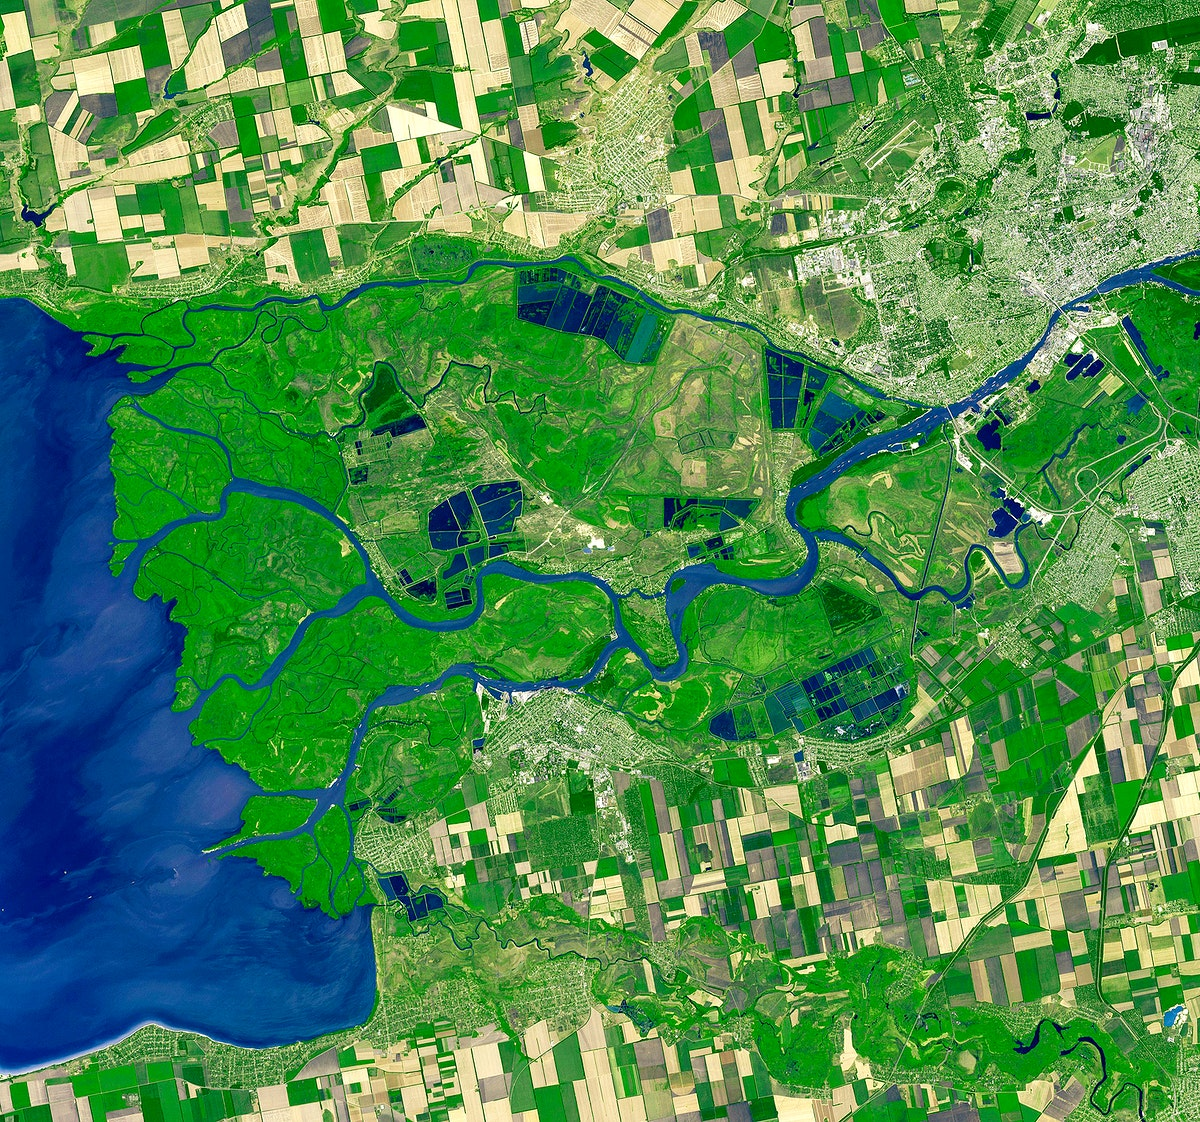 Rostov-on-Don, a Russian City on the Don River, 32 kilometers from the Sea of Azov. Original from NASA. Digitally enhanced by…